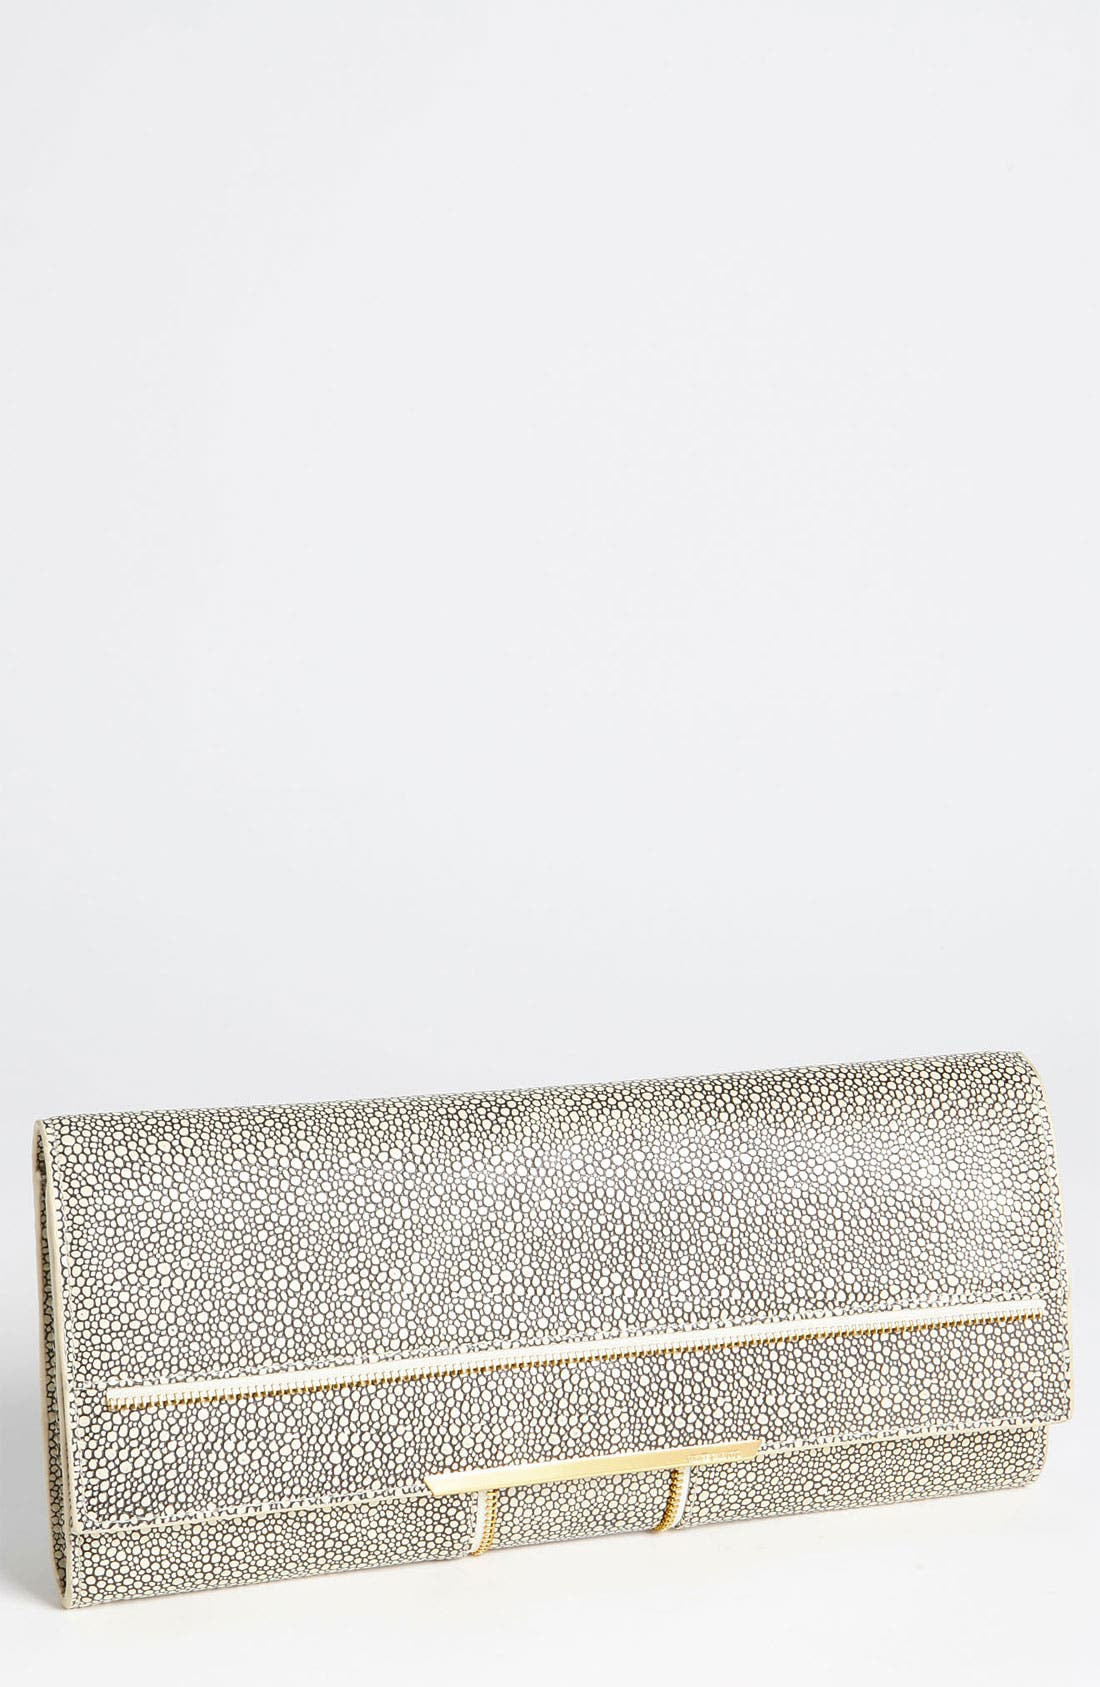 Main Image - Vince Camuto 'Nora' Clutch